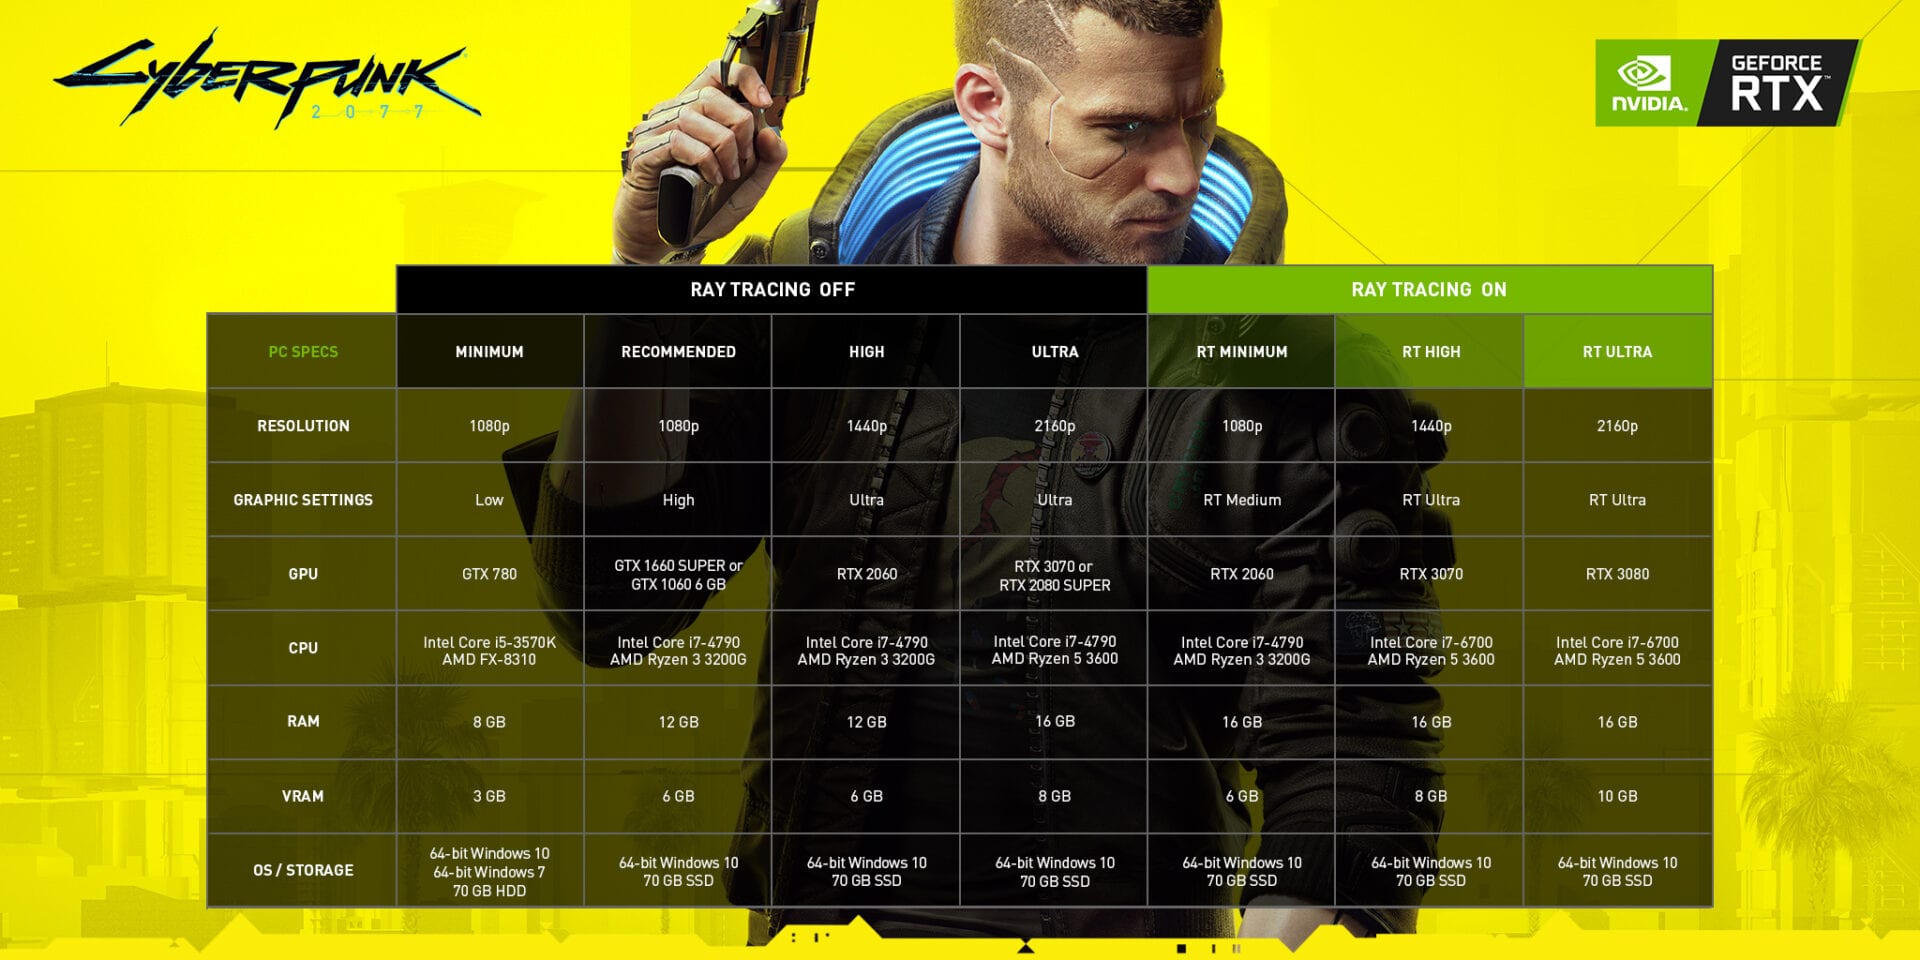 cyberpunk 2077 nvidia geforce recommended system specs scaled 1